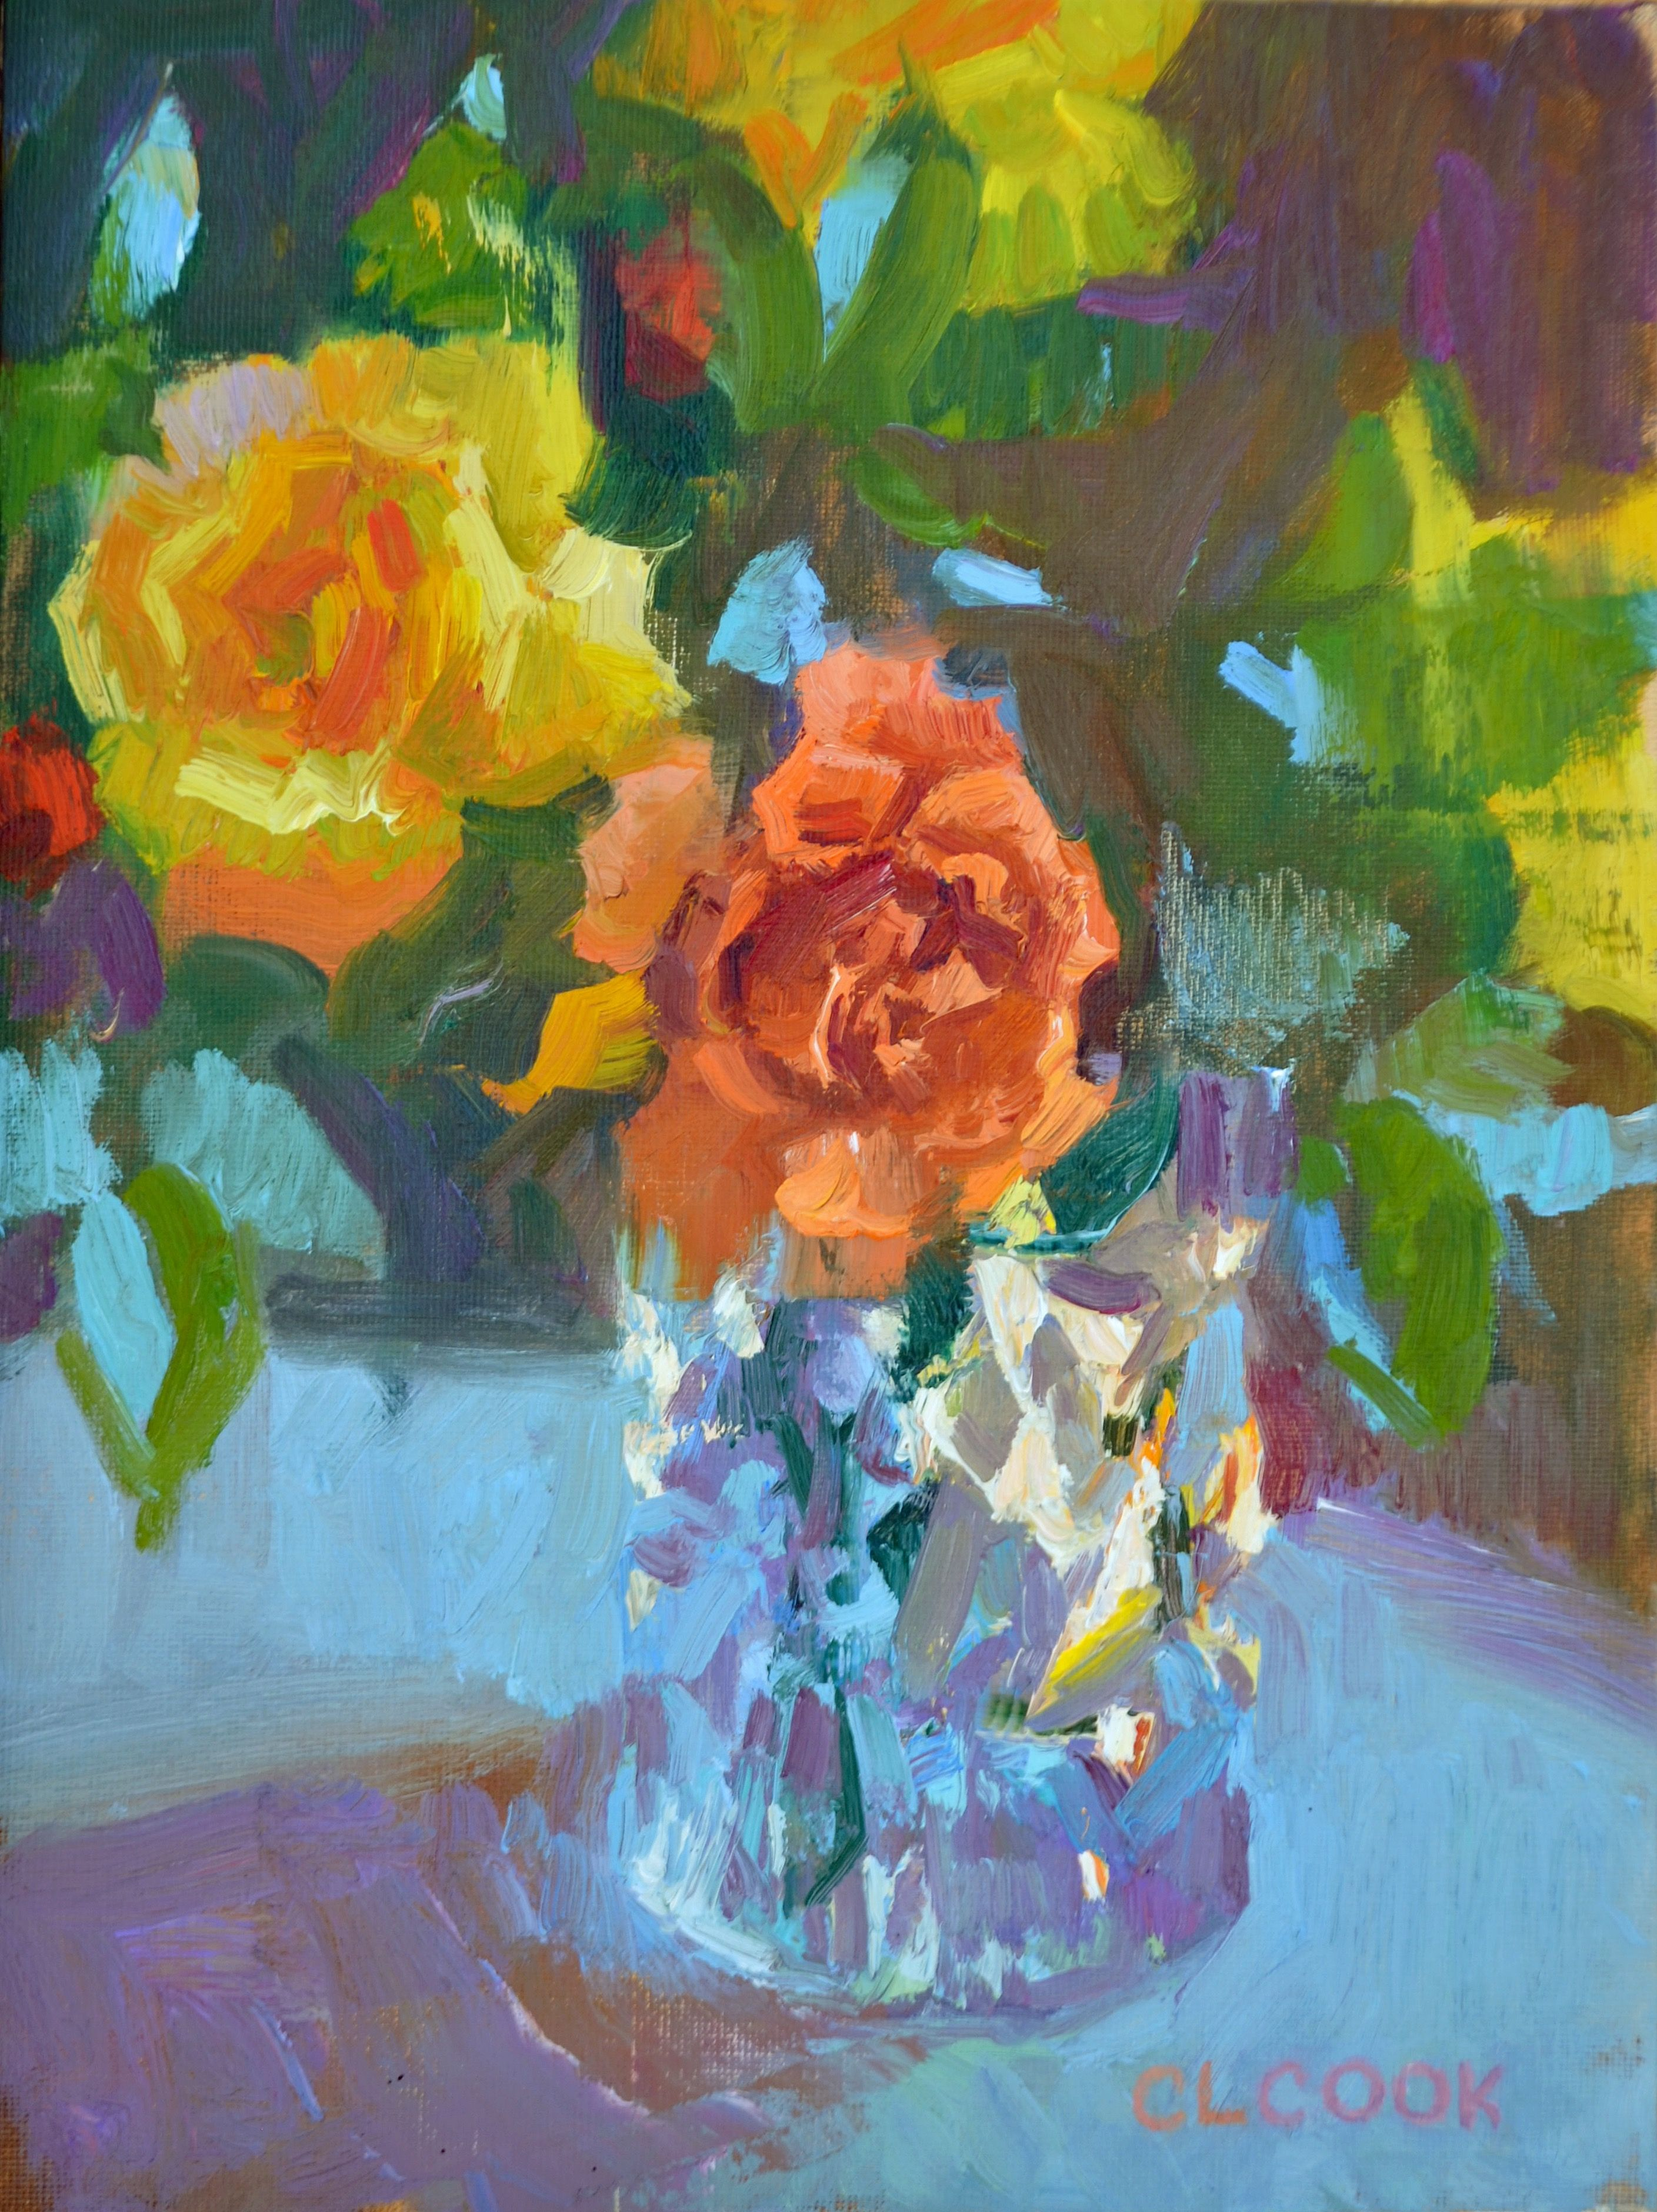 Crystal bloom 12x9 oil on canvas by clcook painting